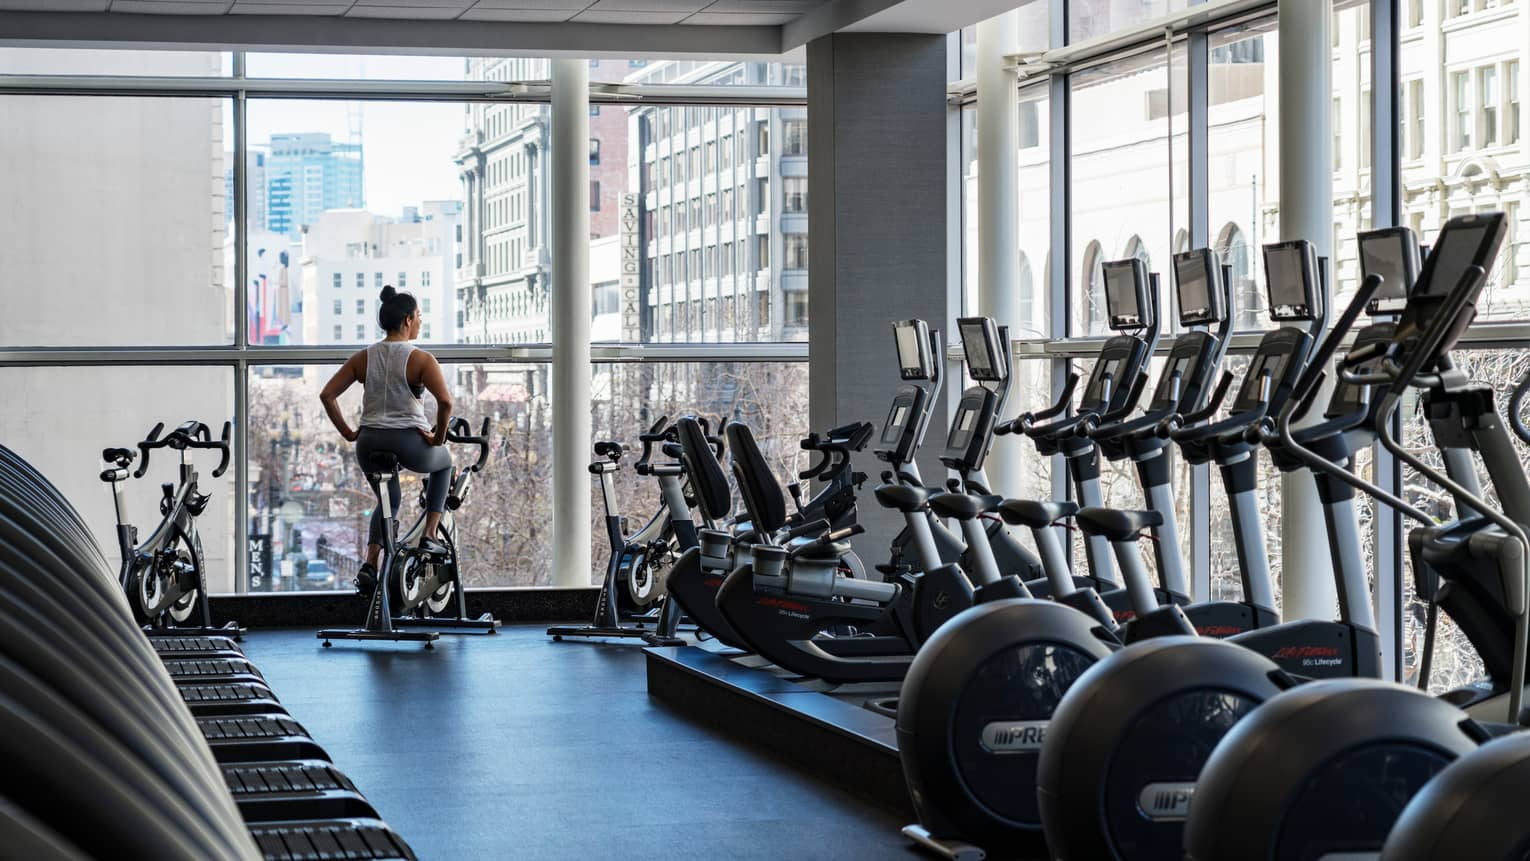 Equinox Fitness Centre, woman on exercise bike by floor-to-ceiling windows, row of cardio machines